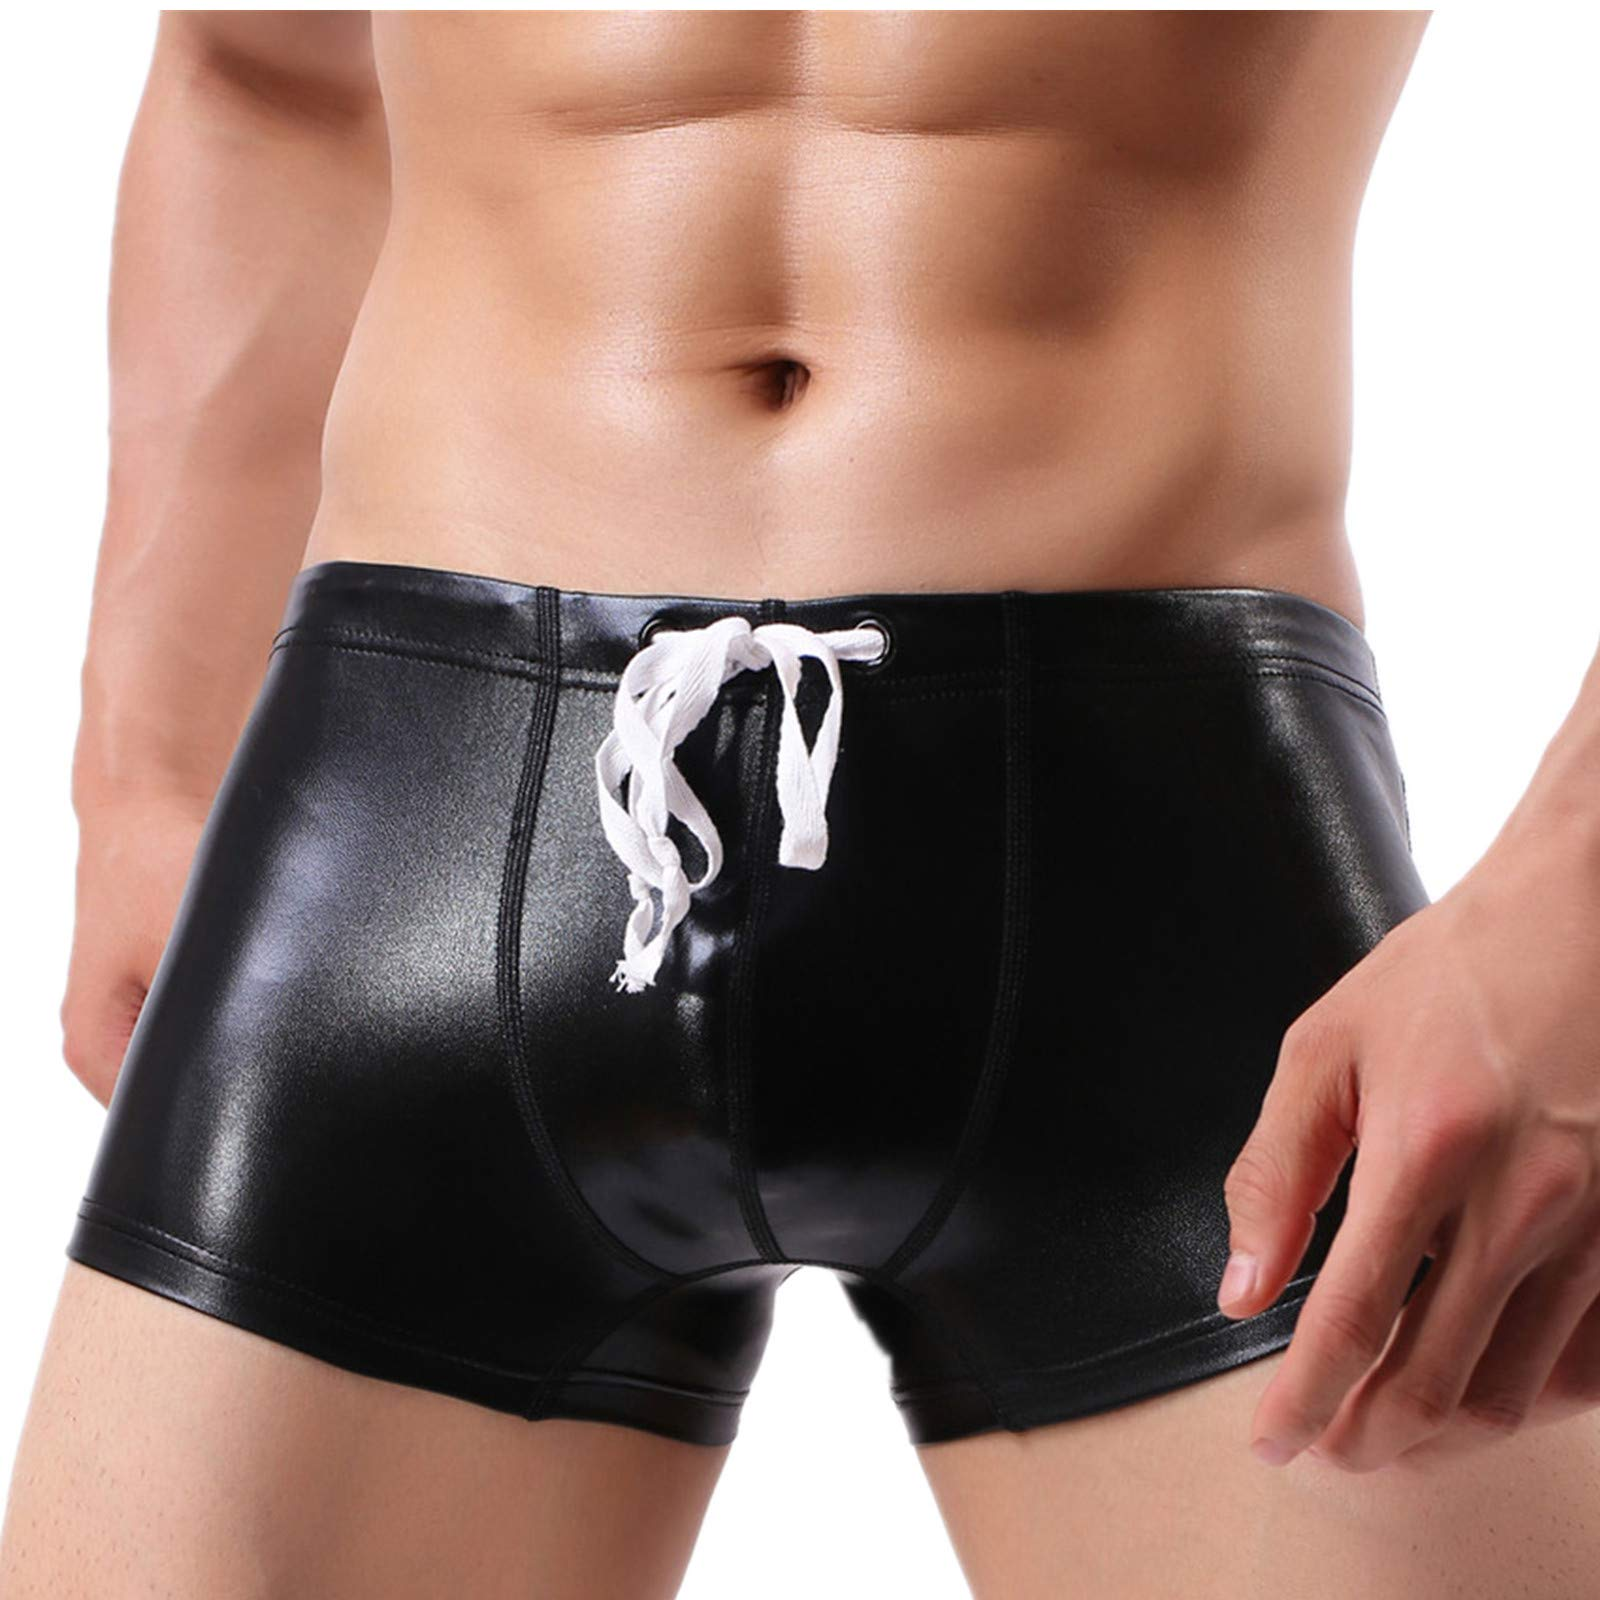 PASATO Sexy Men's Bright Leather Swimming Trunks Beachwear Underwear Surf Boardshorts (Black, L)